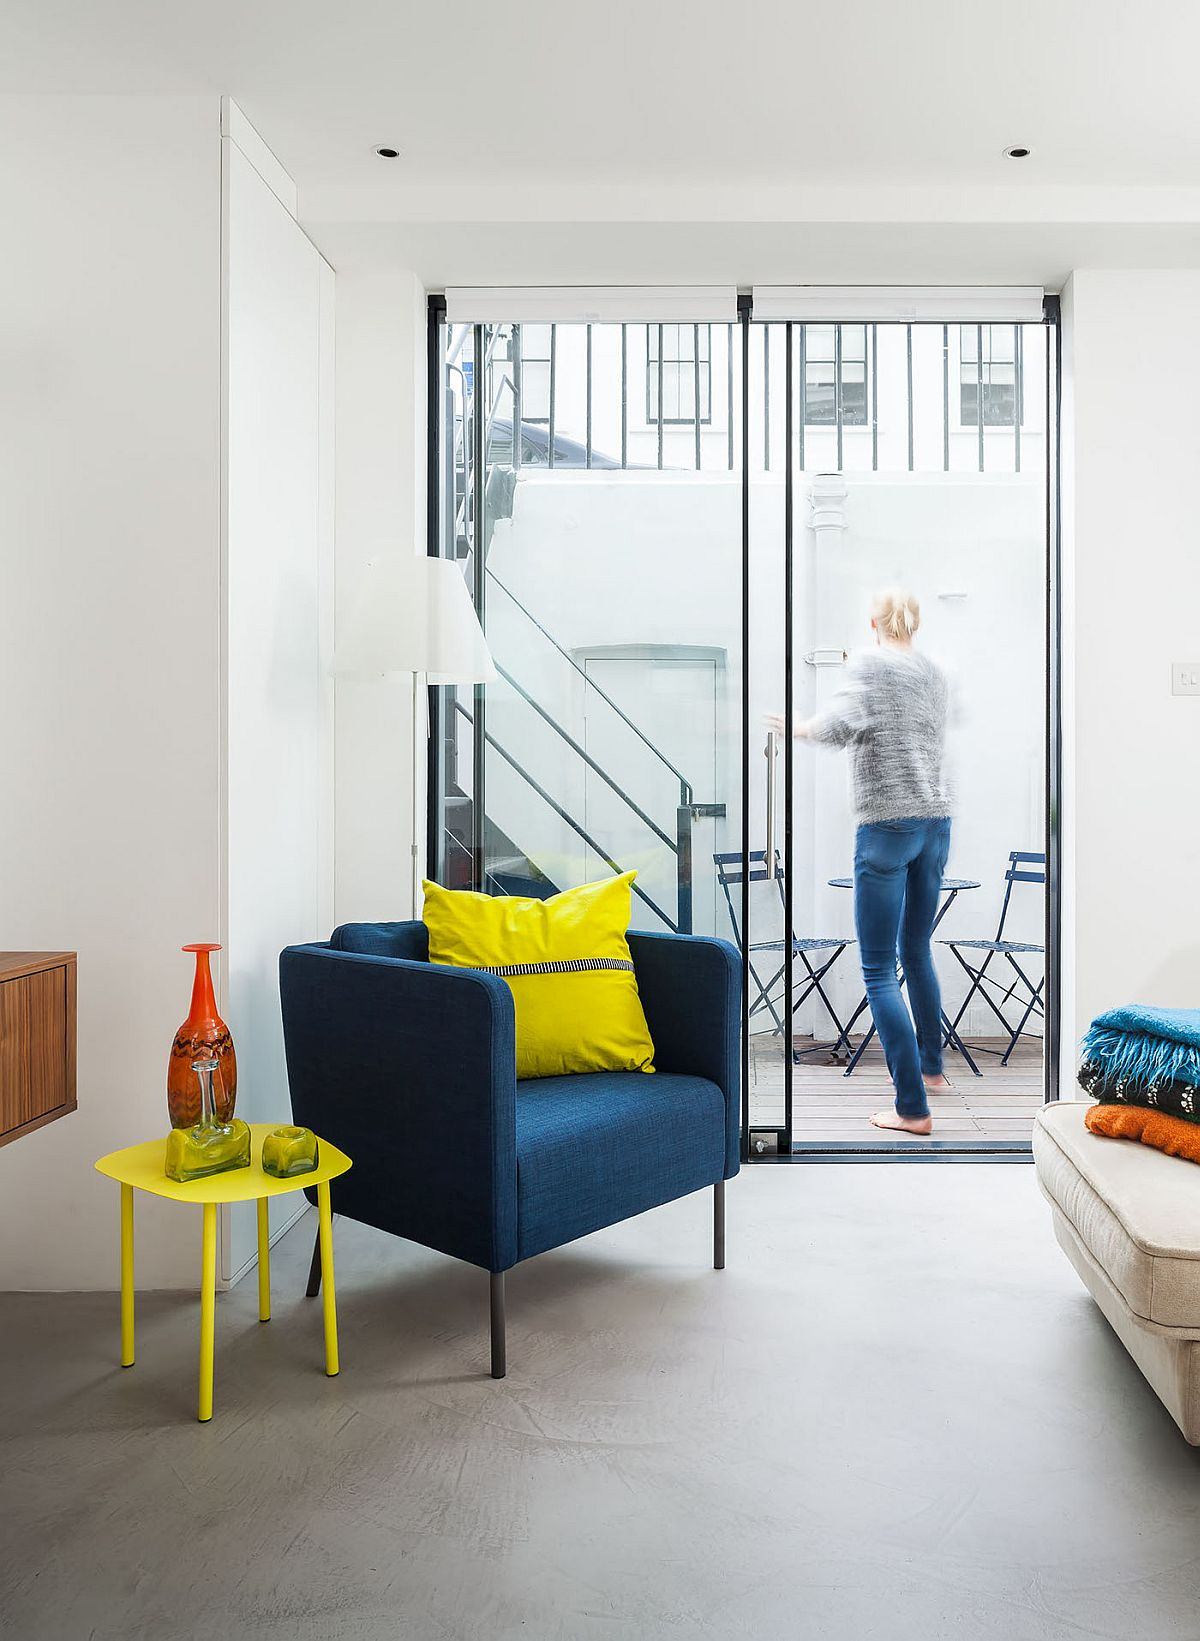 Club chair in blue and accents in yellow add color to the neutral interior Relaxing and Private: Glazed Rear Extension Breathes Life into this British Home